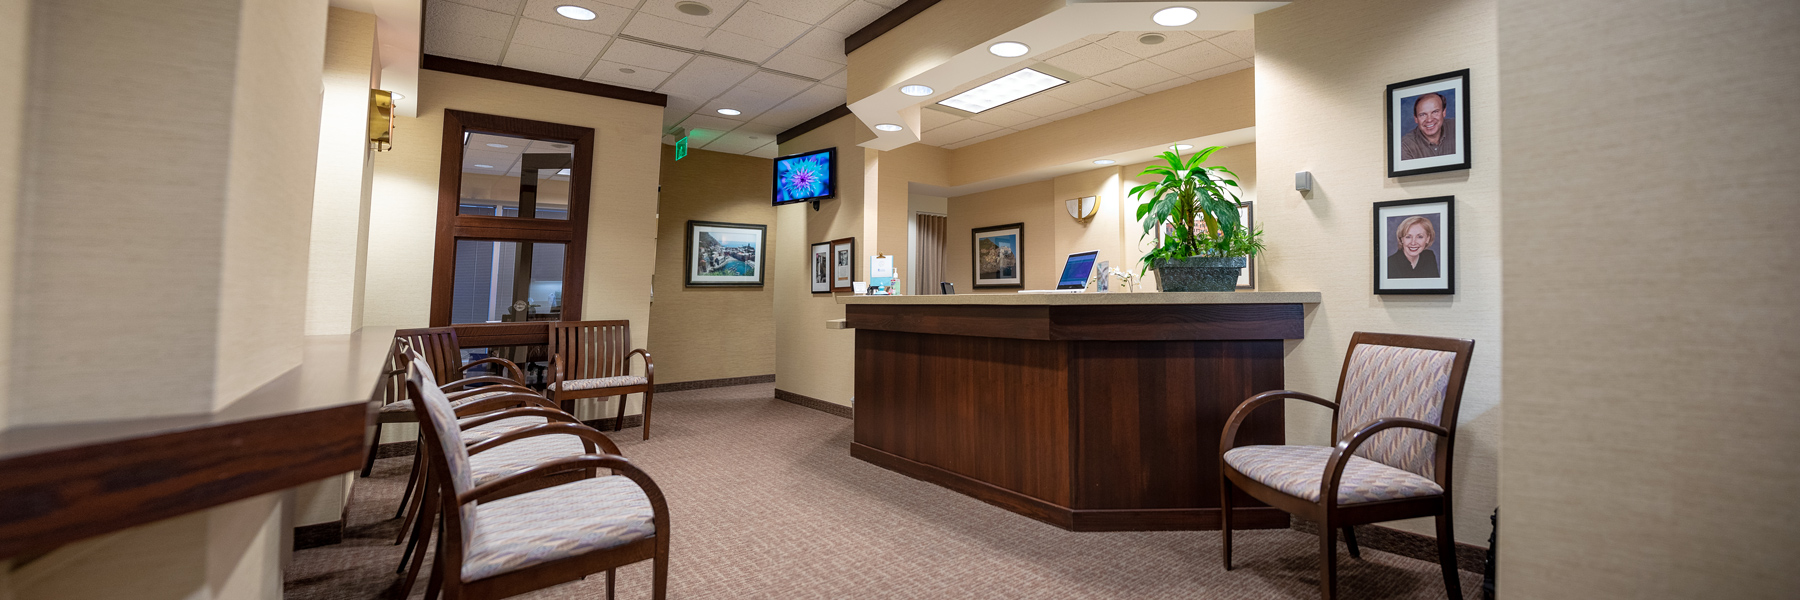 Golden Valley Dental Practice Lobby